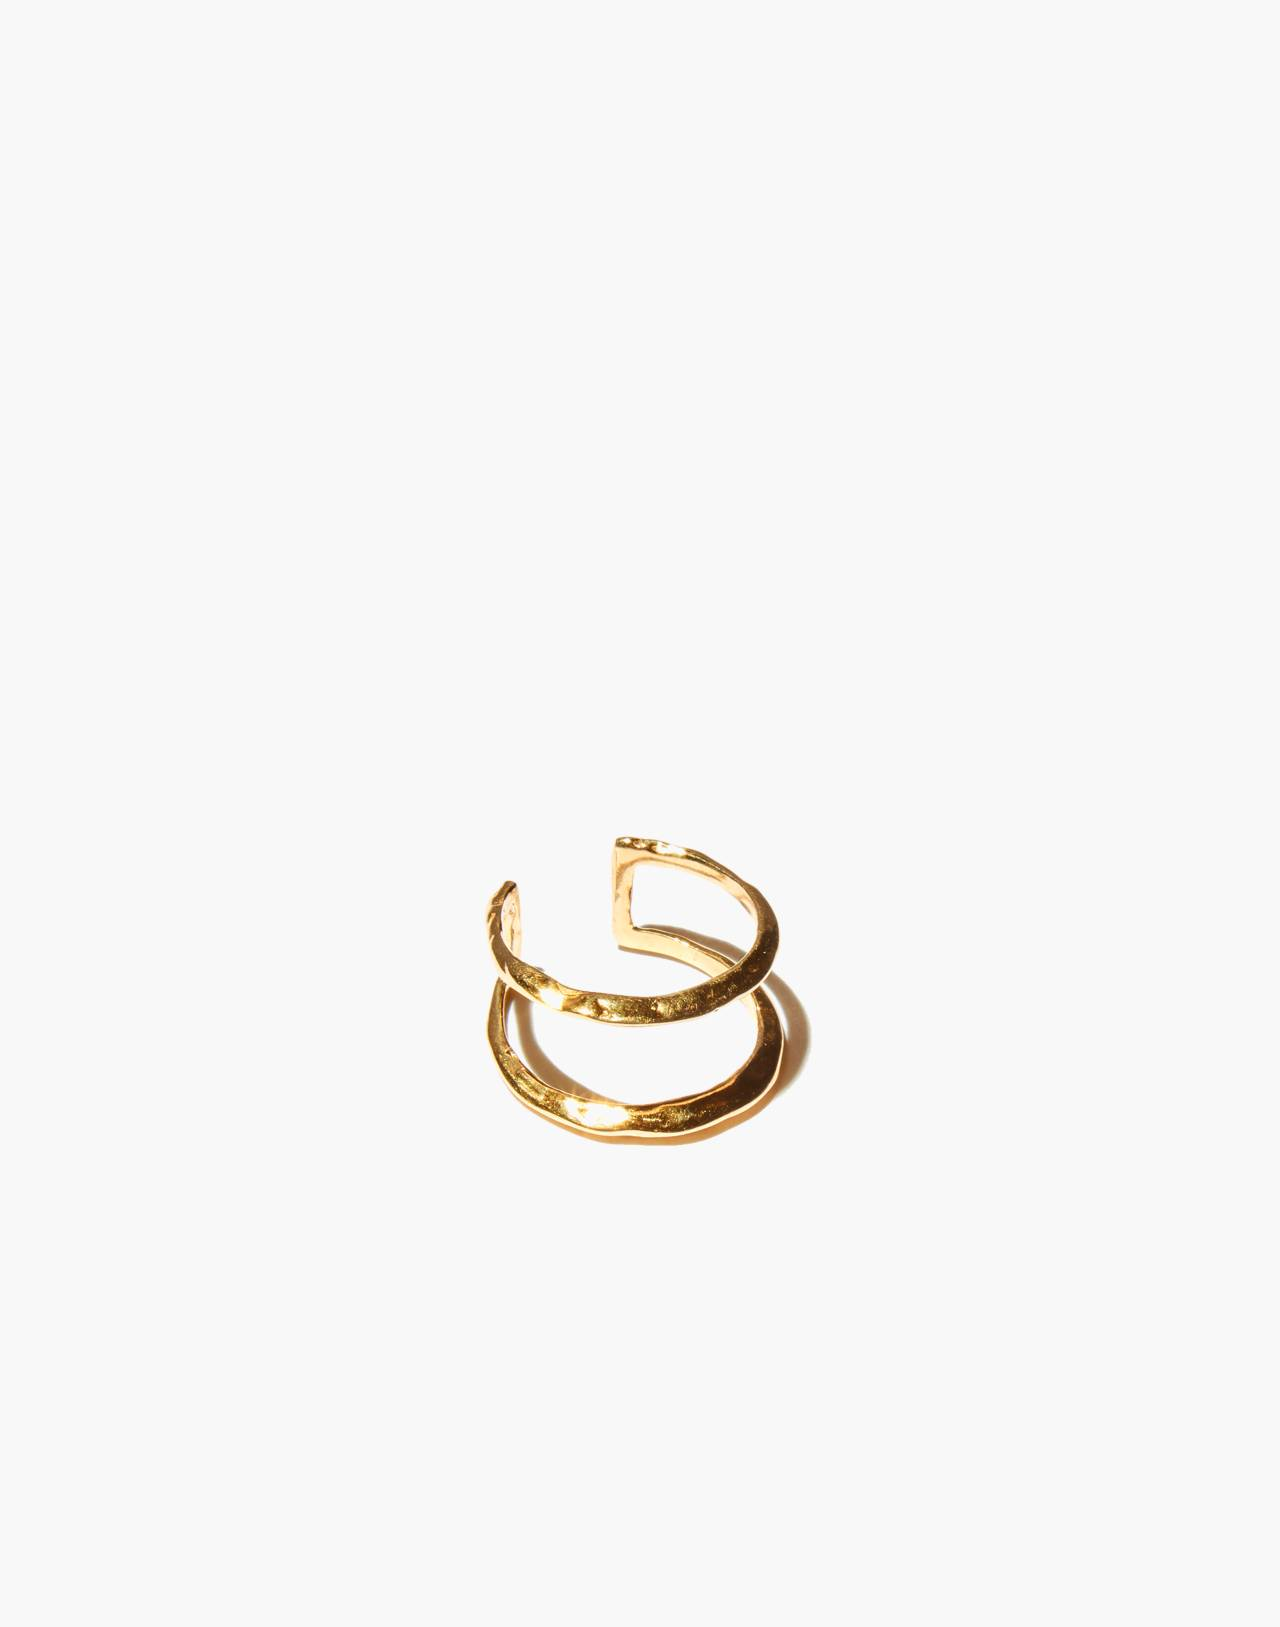 Odette New York® Ridge Stack Ring in gold image 1